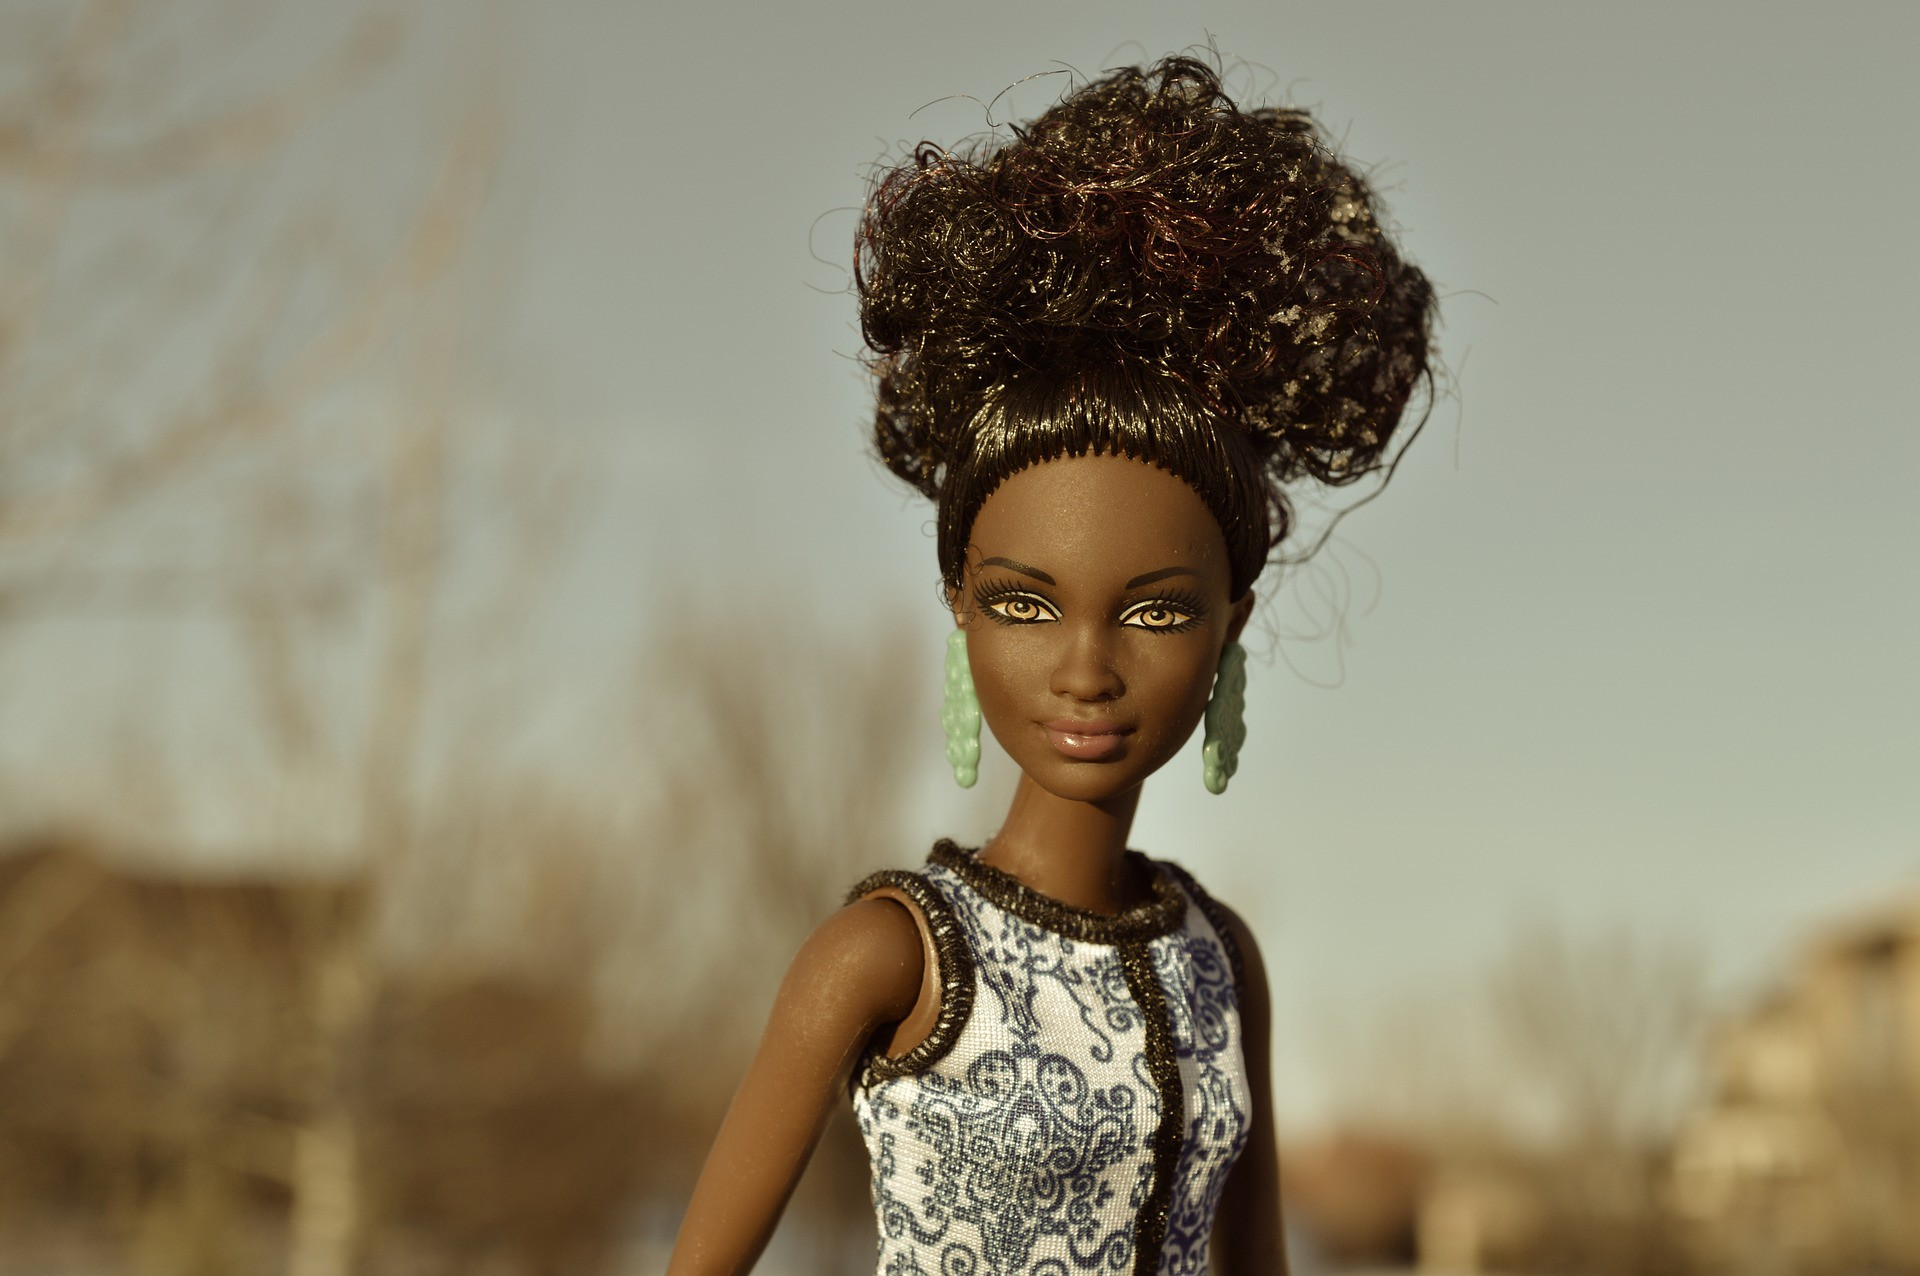 Mattel Toy Company Innovative Thinking: A Black Barbie Doll is looking at the camera. Created by Ruth Handler.